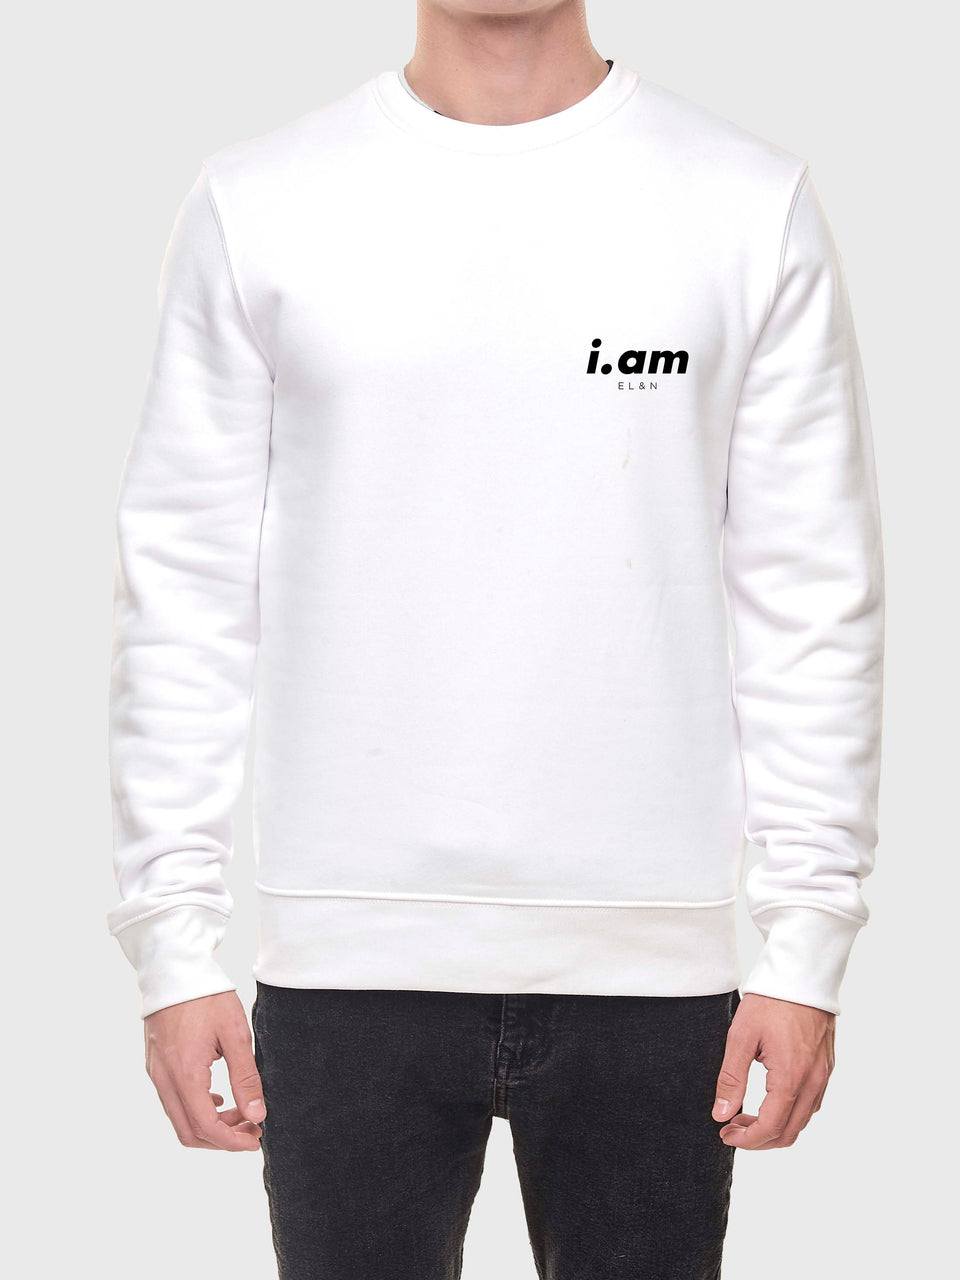 Showing not telling - White / Grey - Sweatshirt